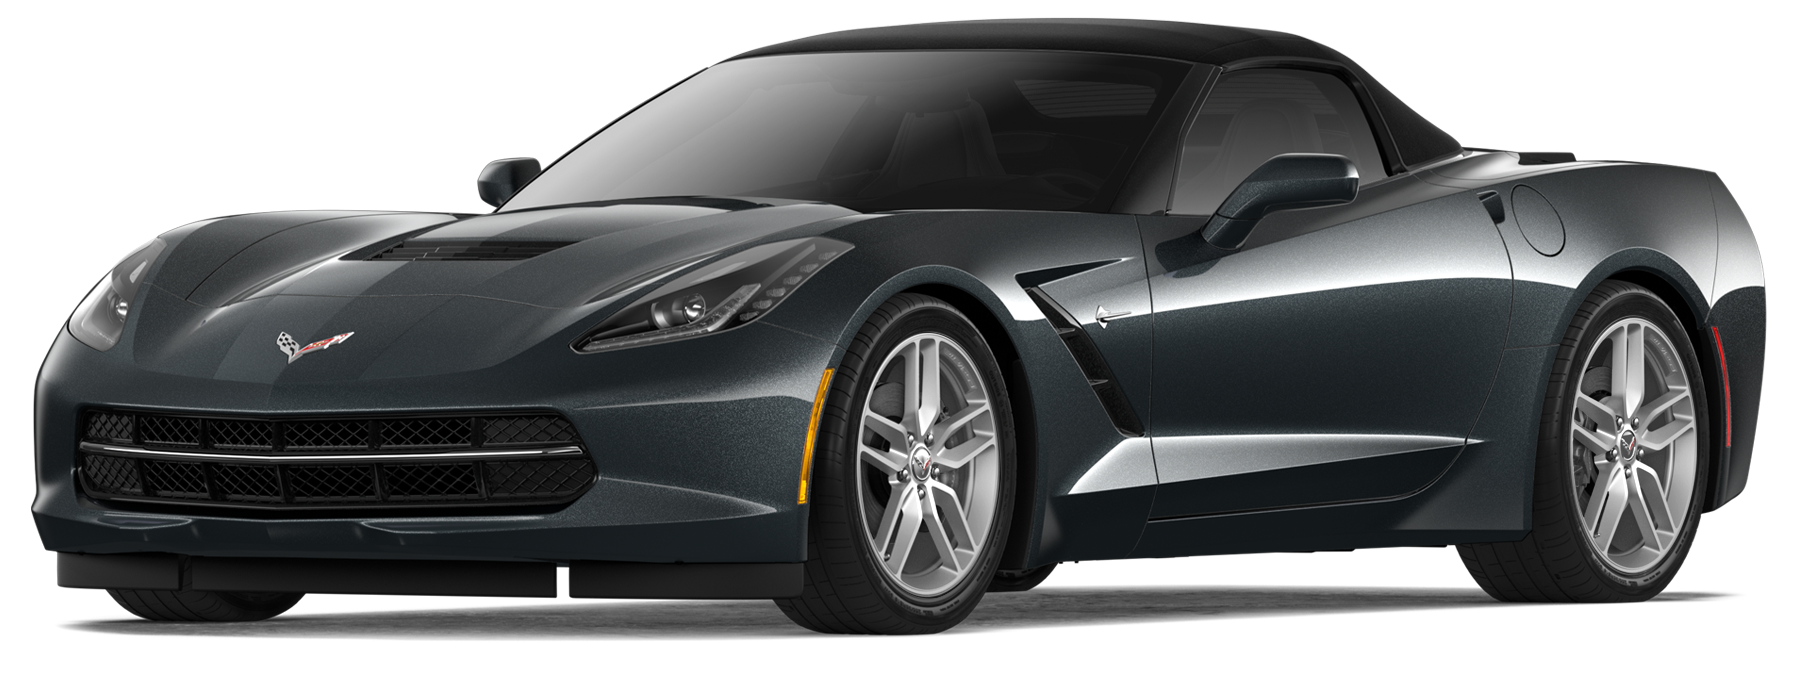 2019 Chevrolet Corvette Incentives, Specials & Offers in ...